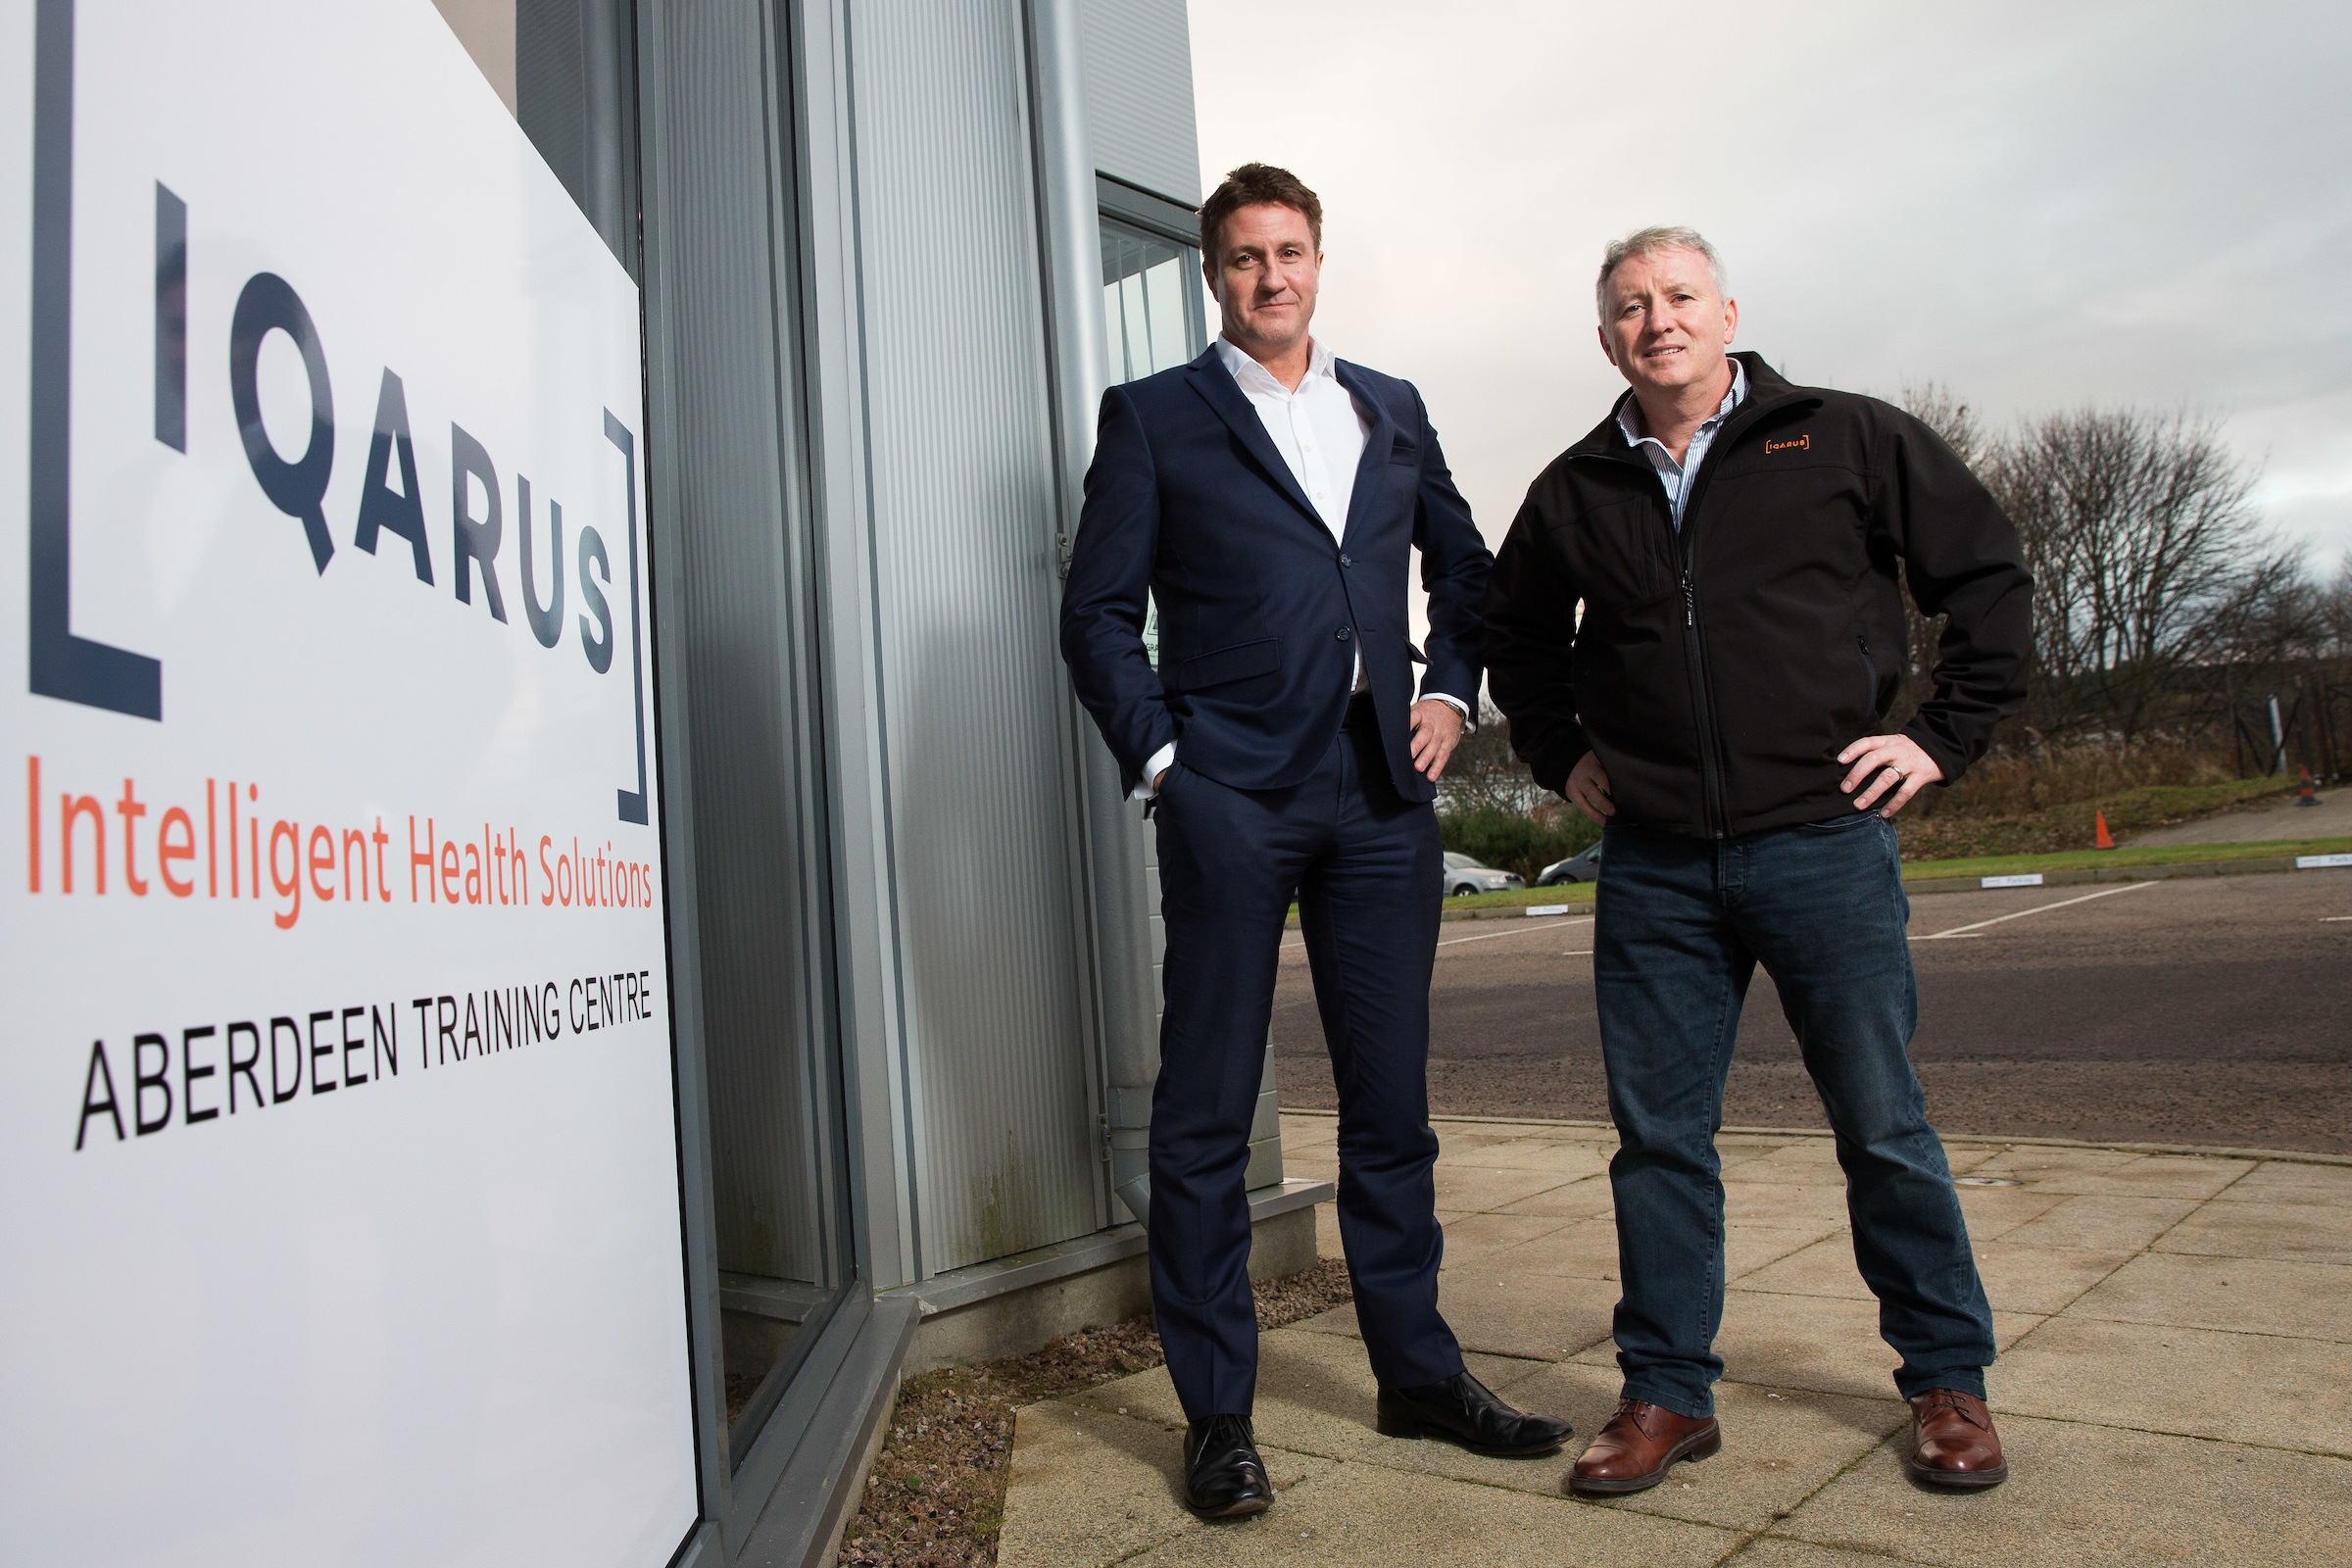 Andrew Hames, Iqarus chief commercial development manager, left, and Ged Healy, executive director of training and development at Iqarus,